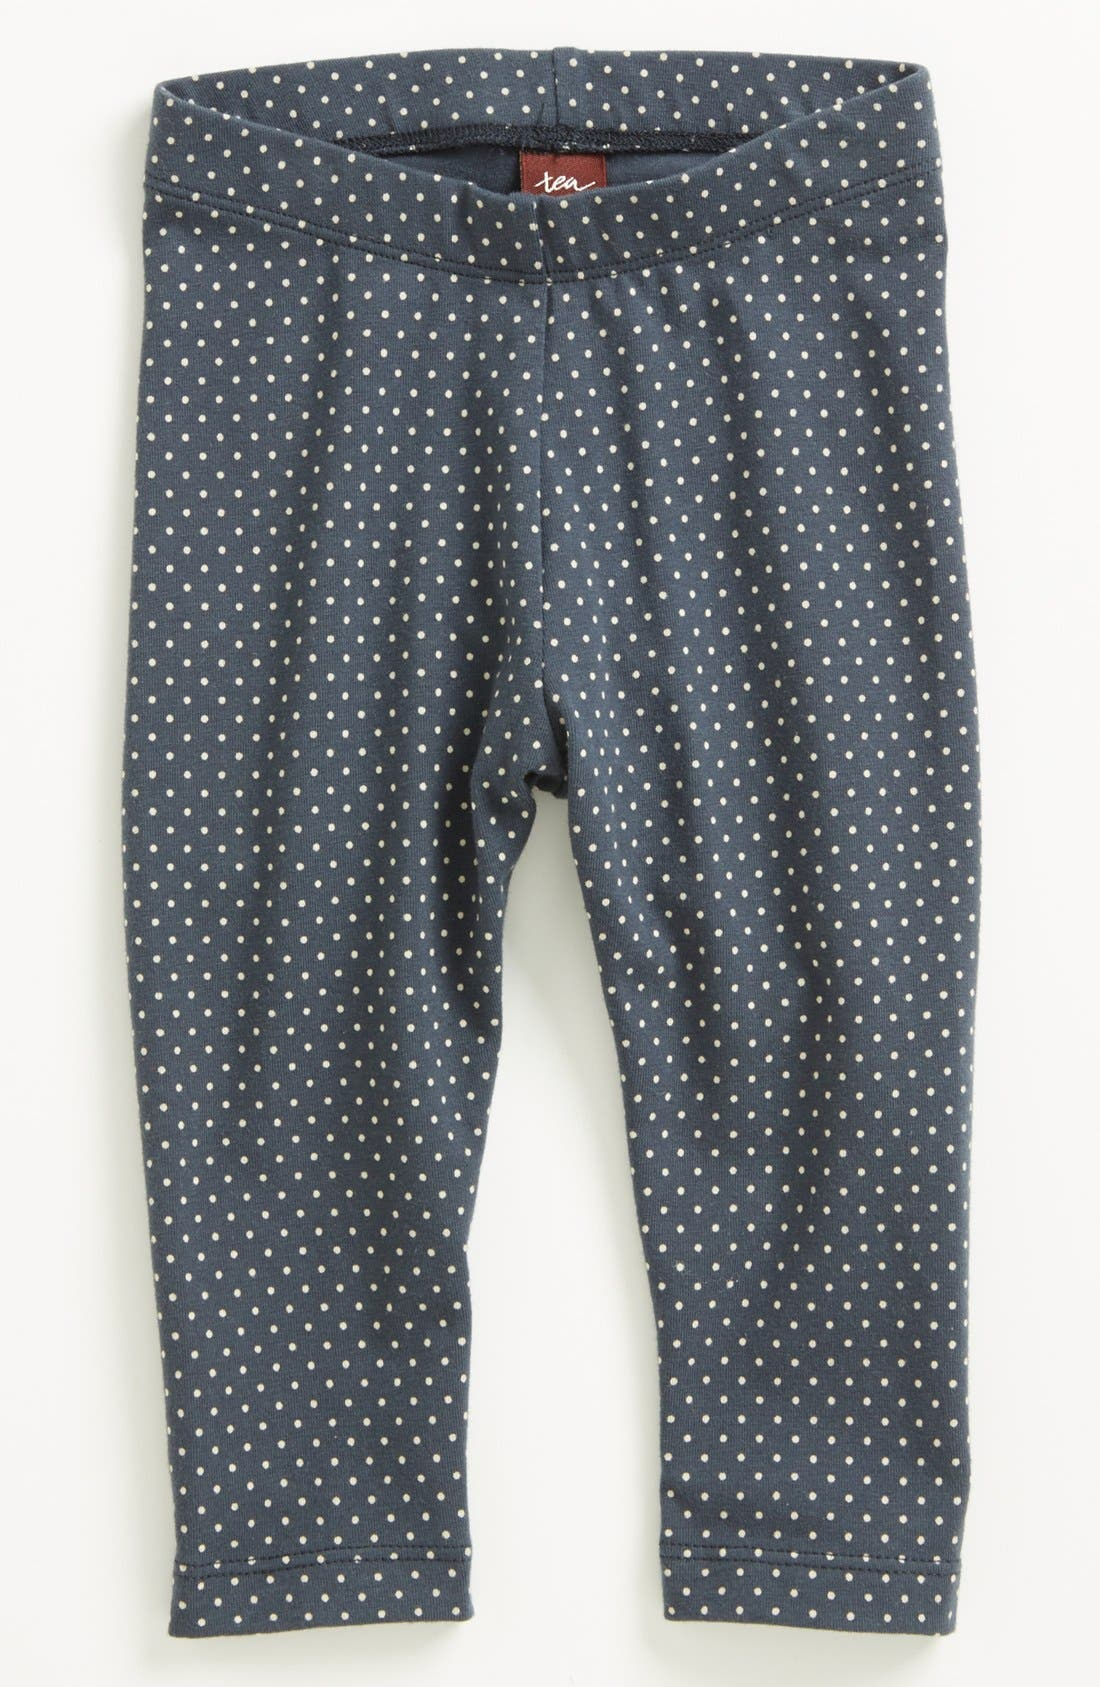 Alternate Image 1 Selected - Tea Collection Polka Dot Stretch Leggings (Baby Girls)